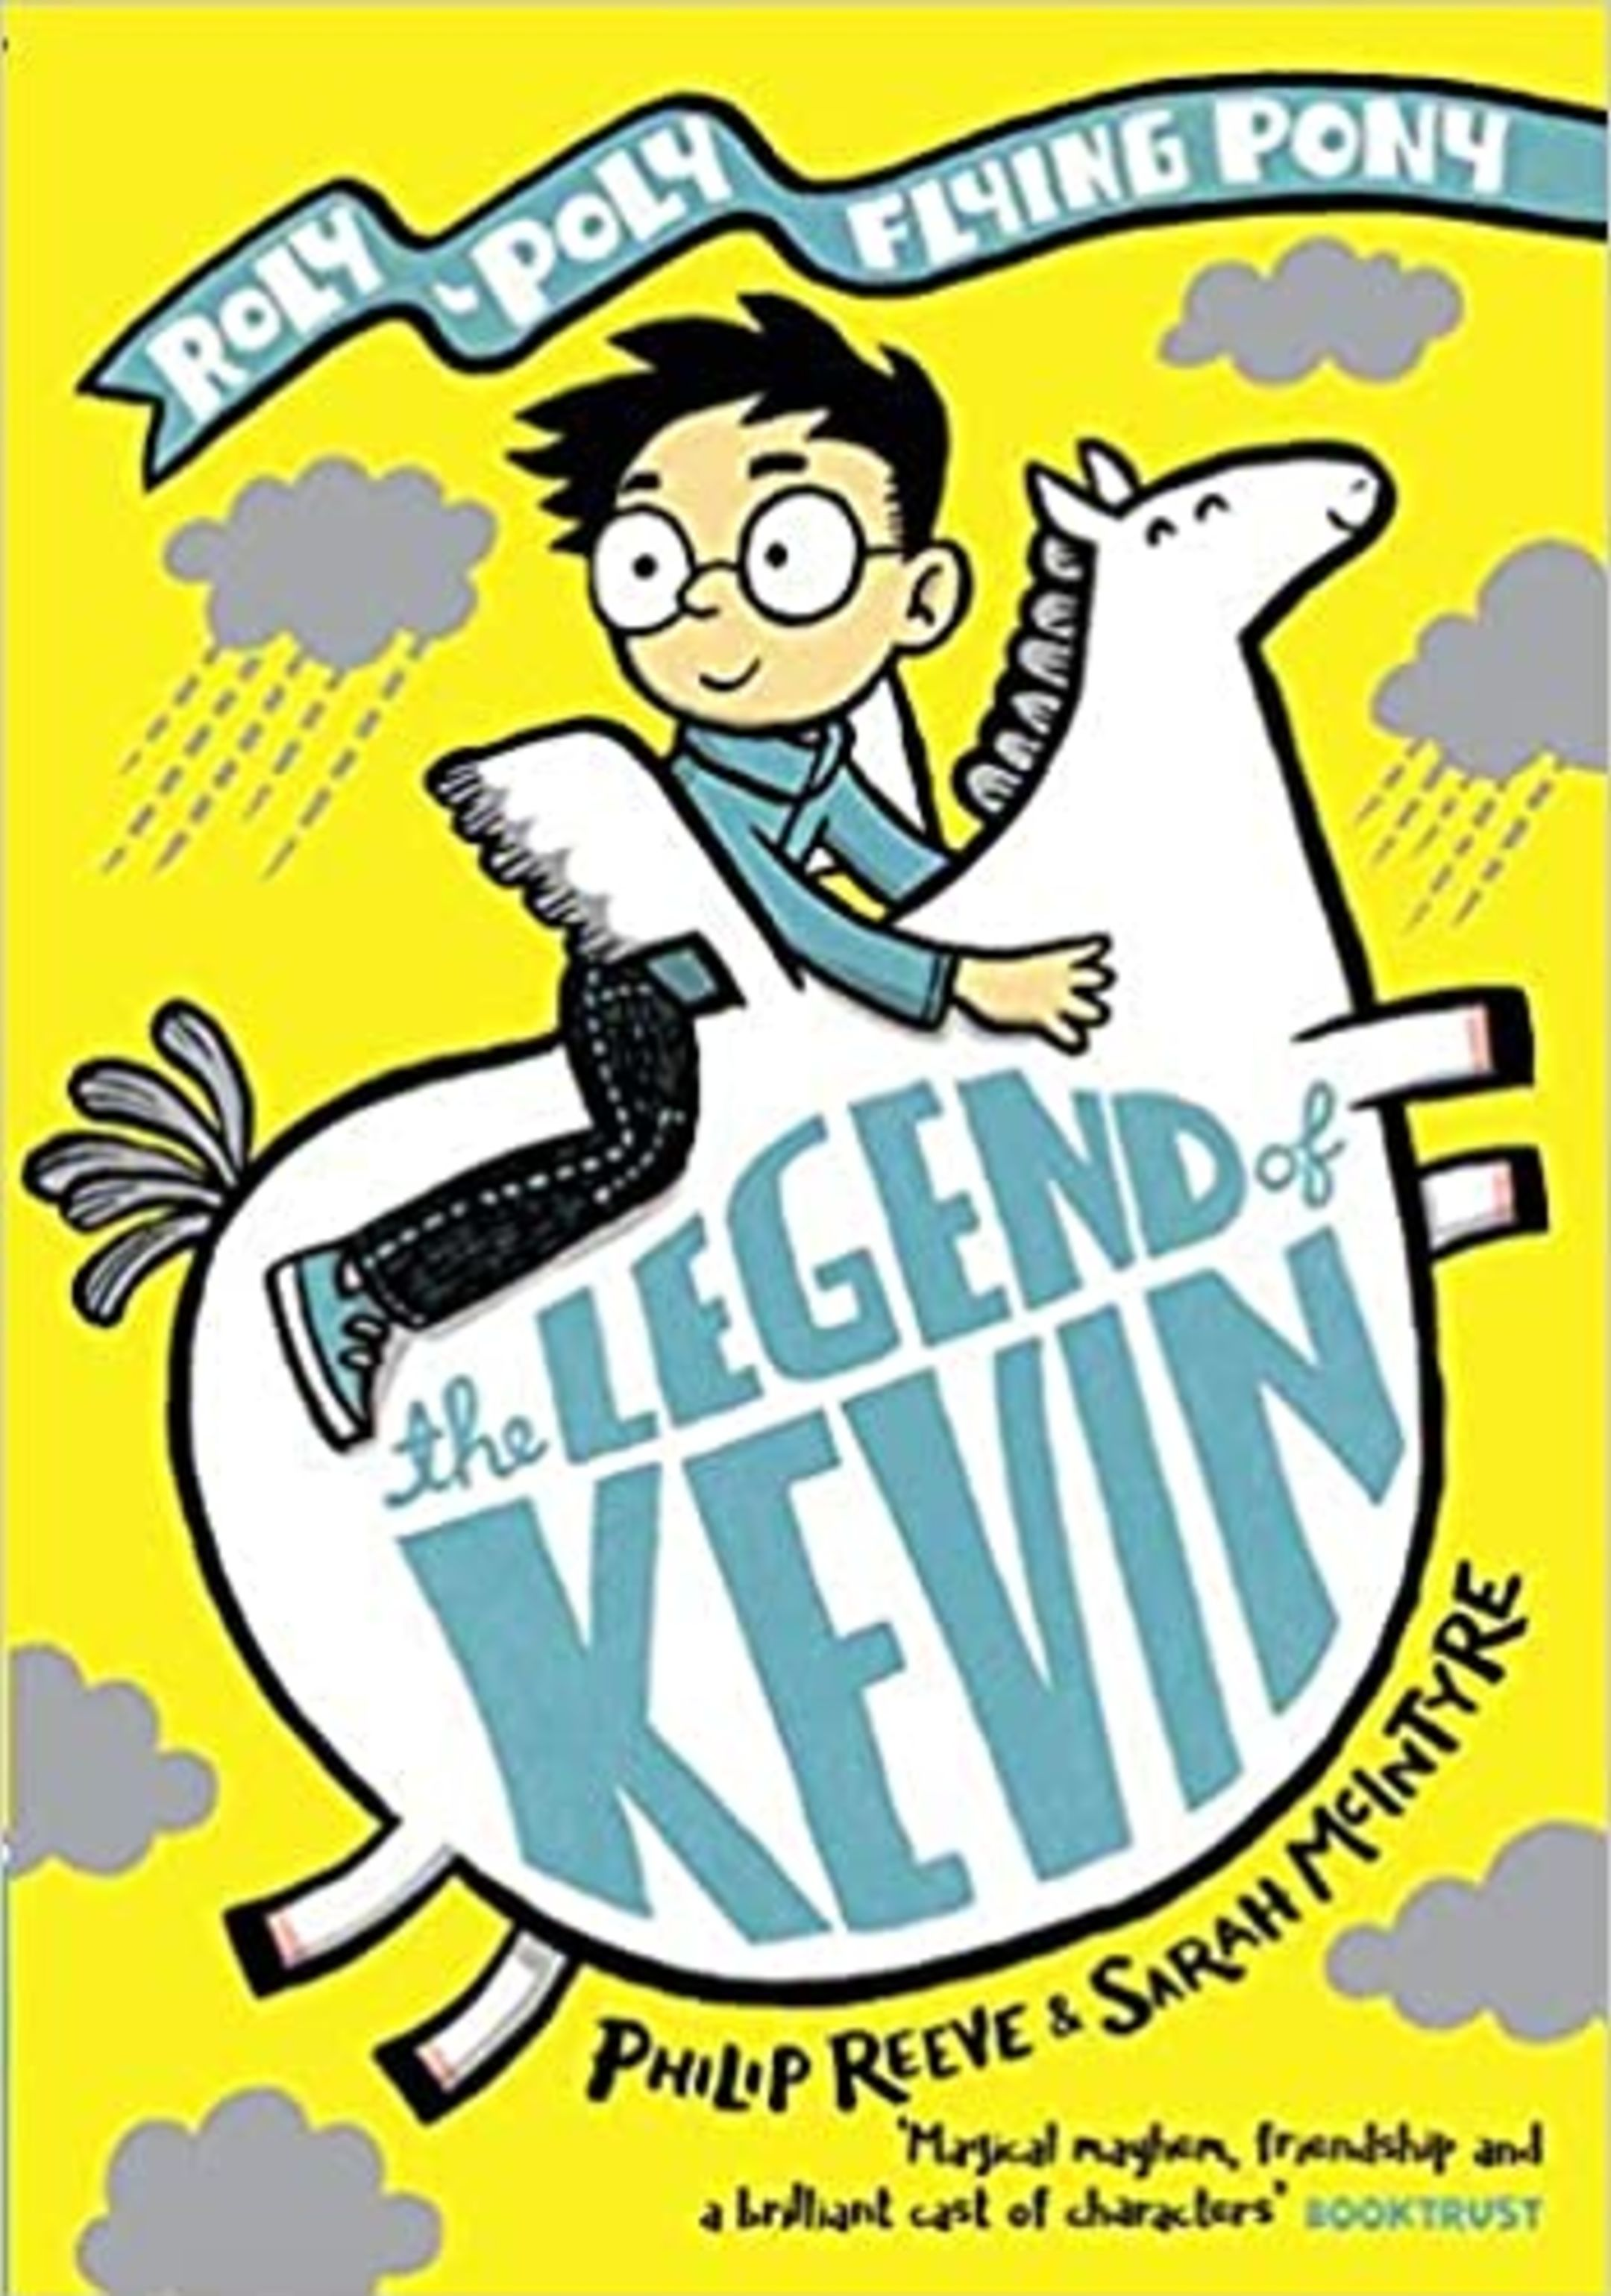 An image of the cover of the book, The Legend of Kevin, by Philip Reeve and Sarah McIntyre